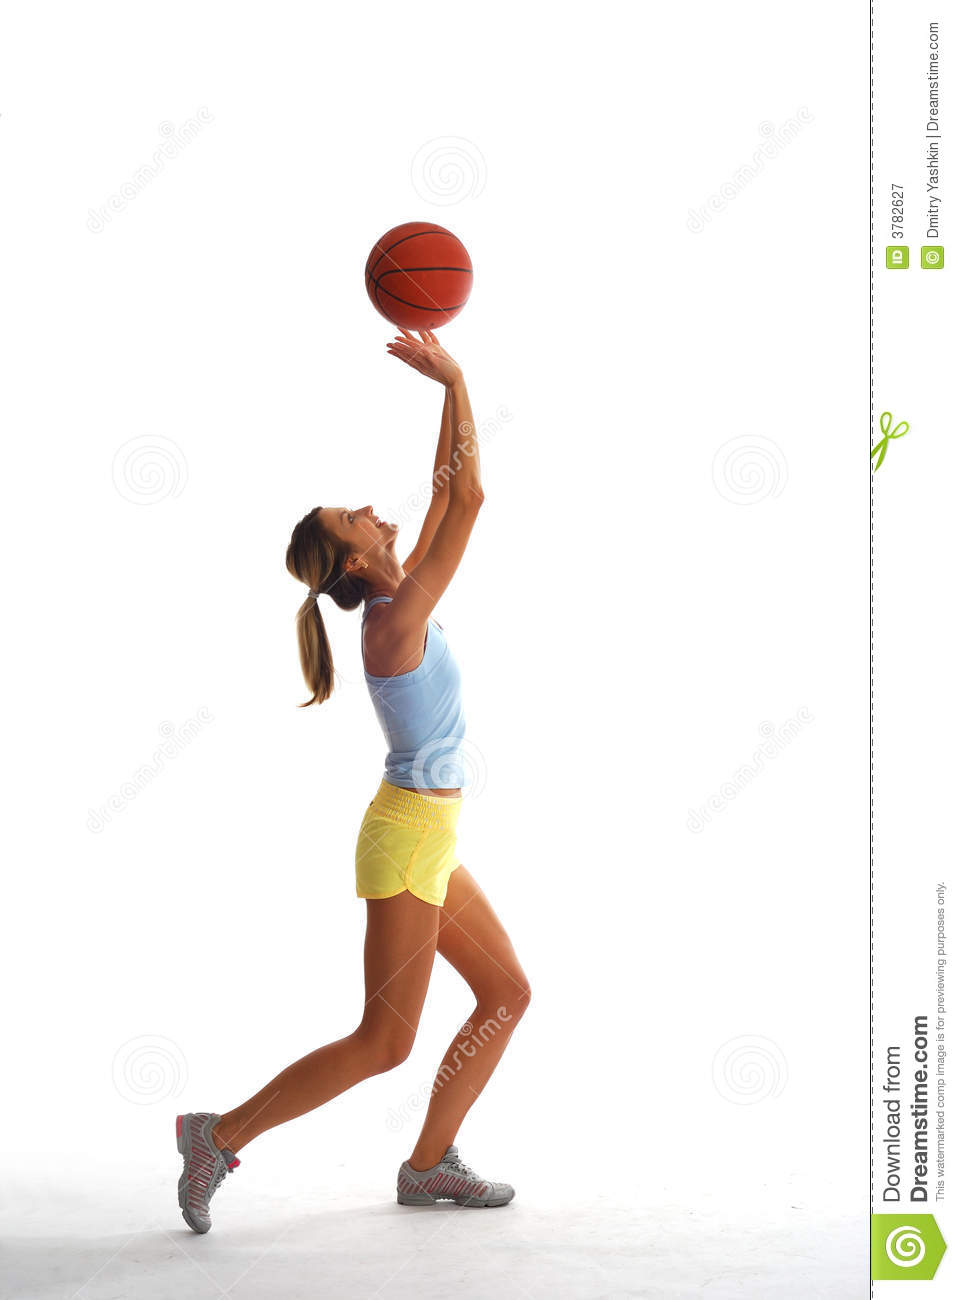 Sporty girl with basket ball